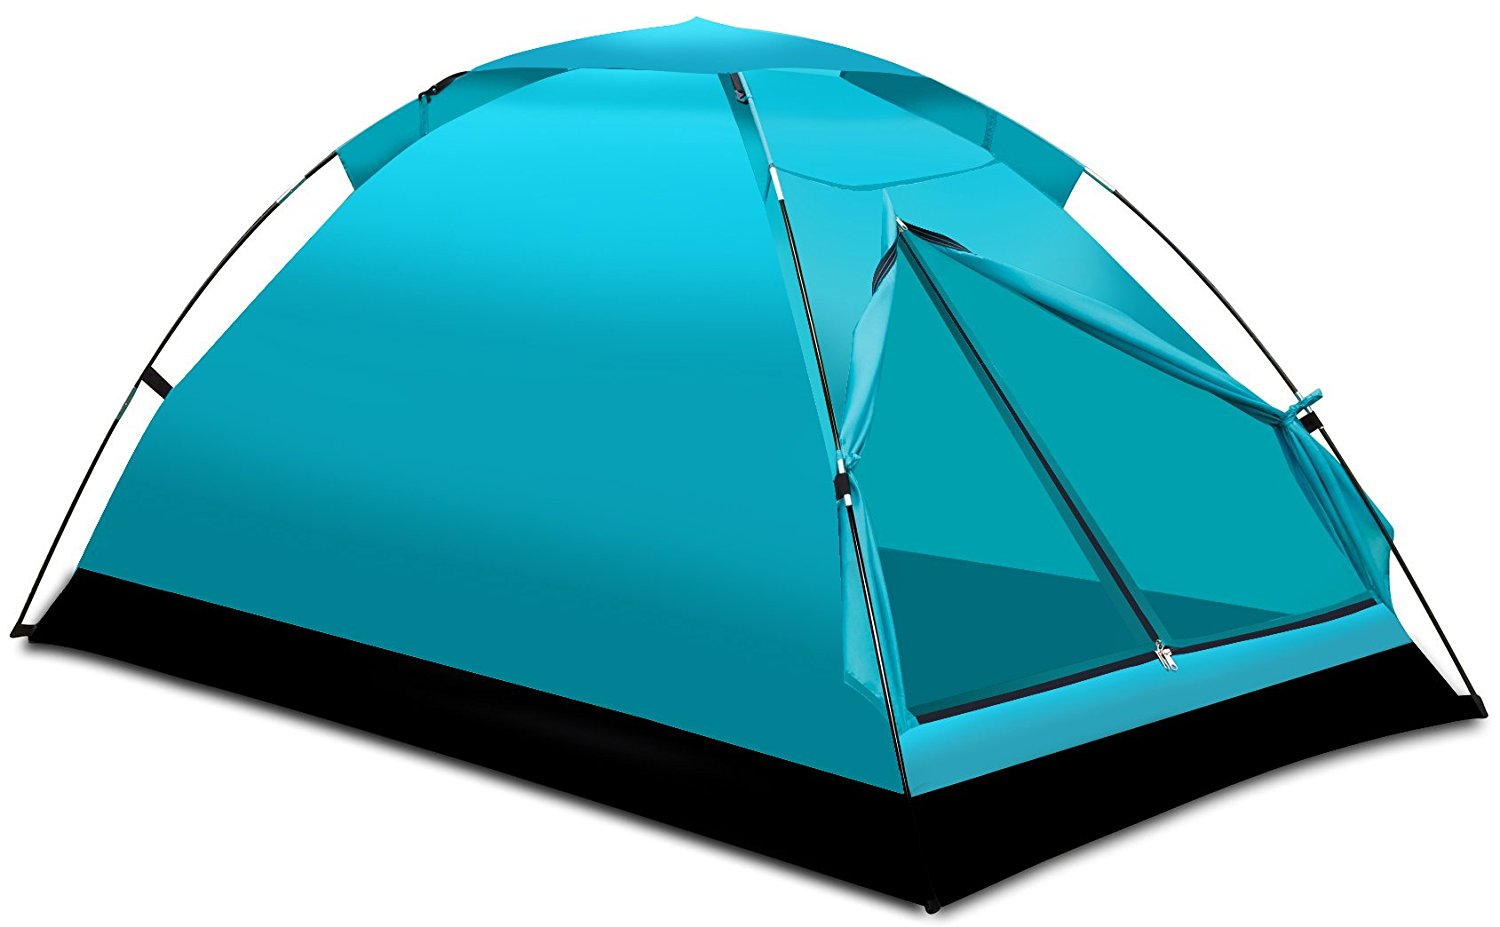 Camping Tent Outdoor Travelite Backpacking Light-Weight Family Dome Tent 2 Person, 2 Season Instant Portable Shelter... by Alvantor